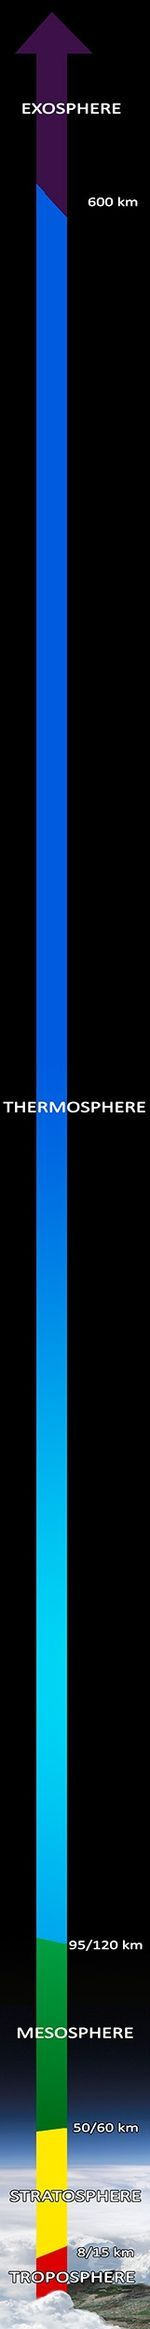 Diagram of Earth's atmosphere (layers to scale). Distance from the surface to the top of the stratosphere is just under 1% of Earth's radius.